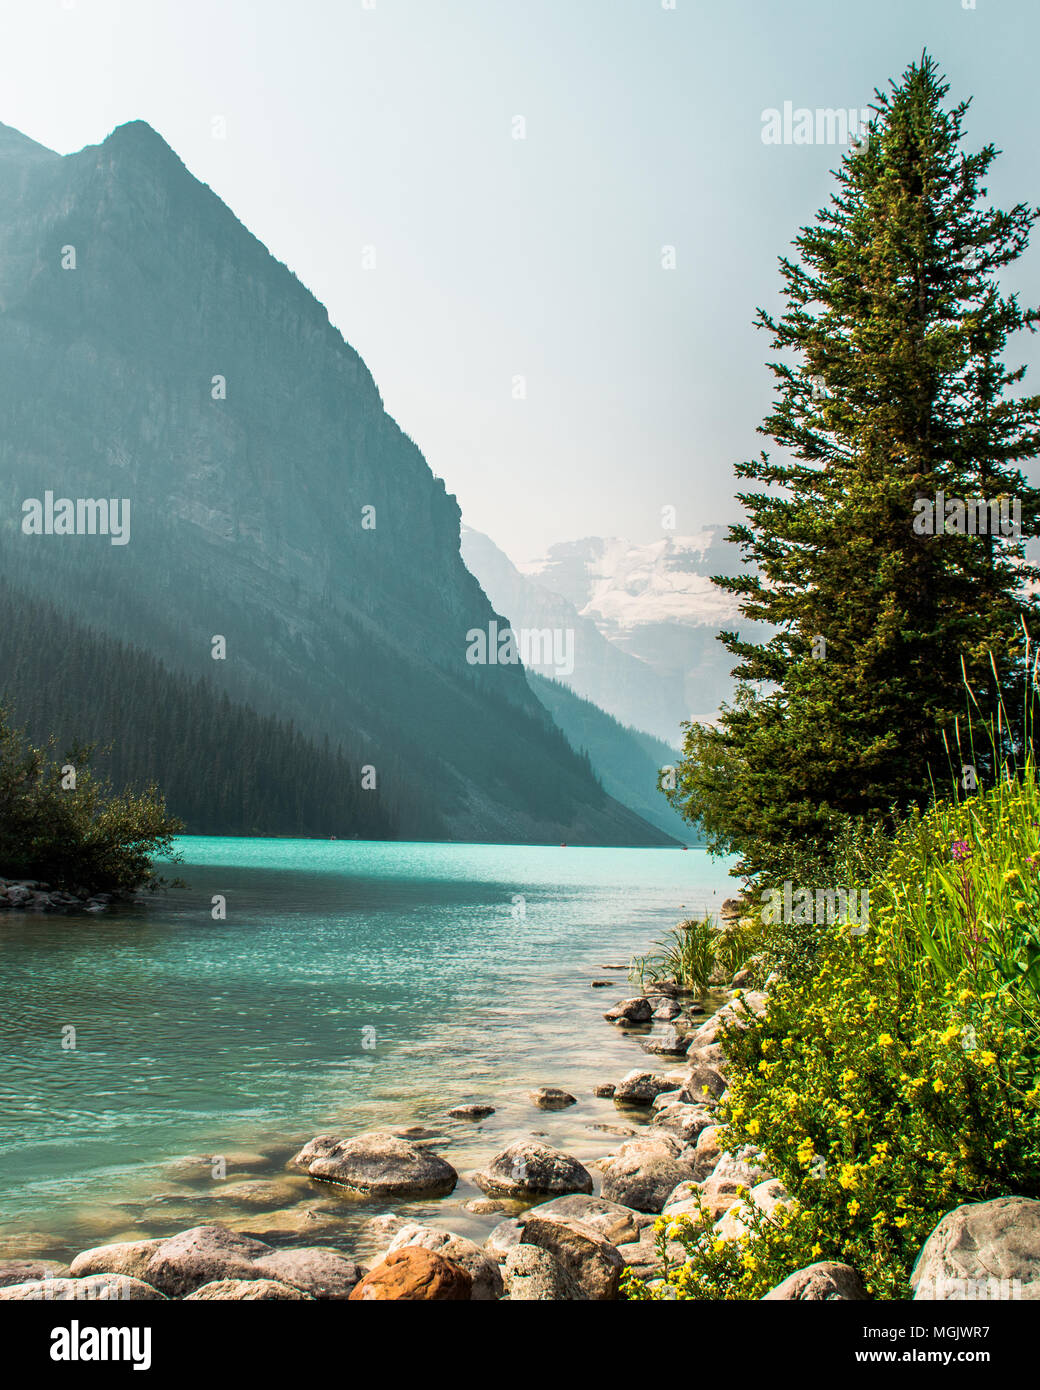 Beautiful Lake Louise in Banff National Park, Alberta Canada - Stock Image